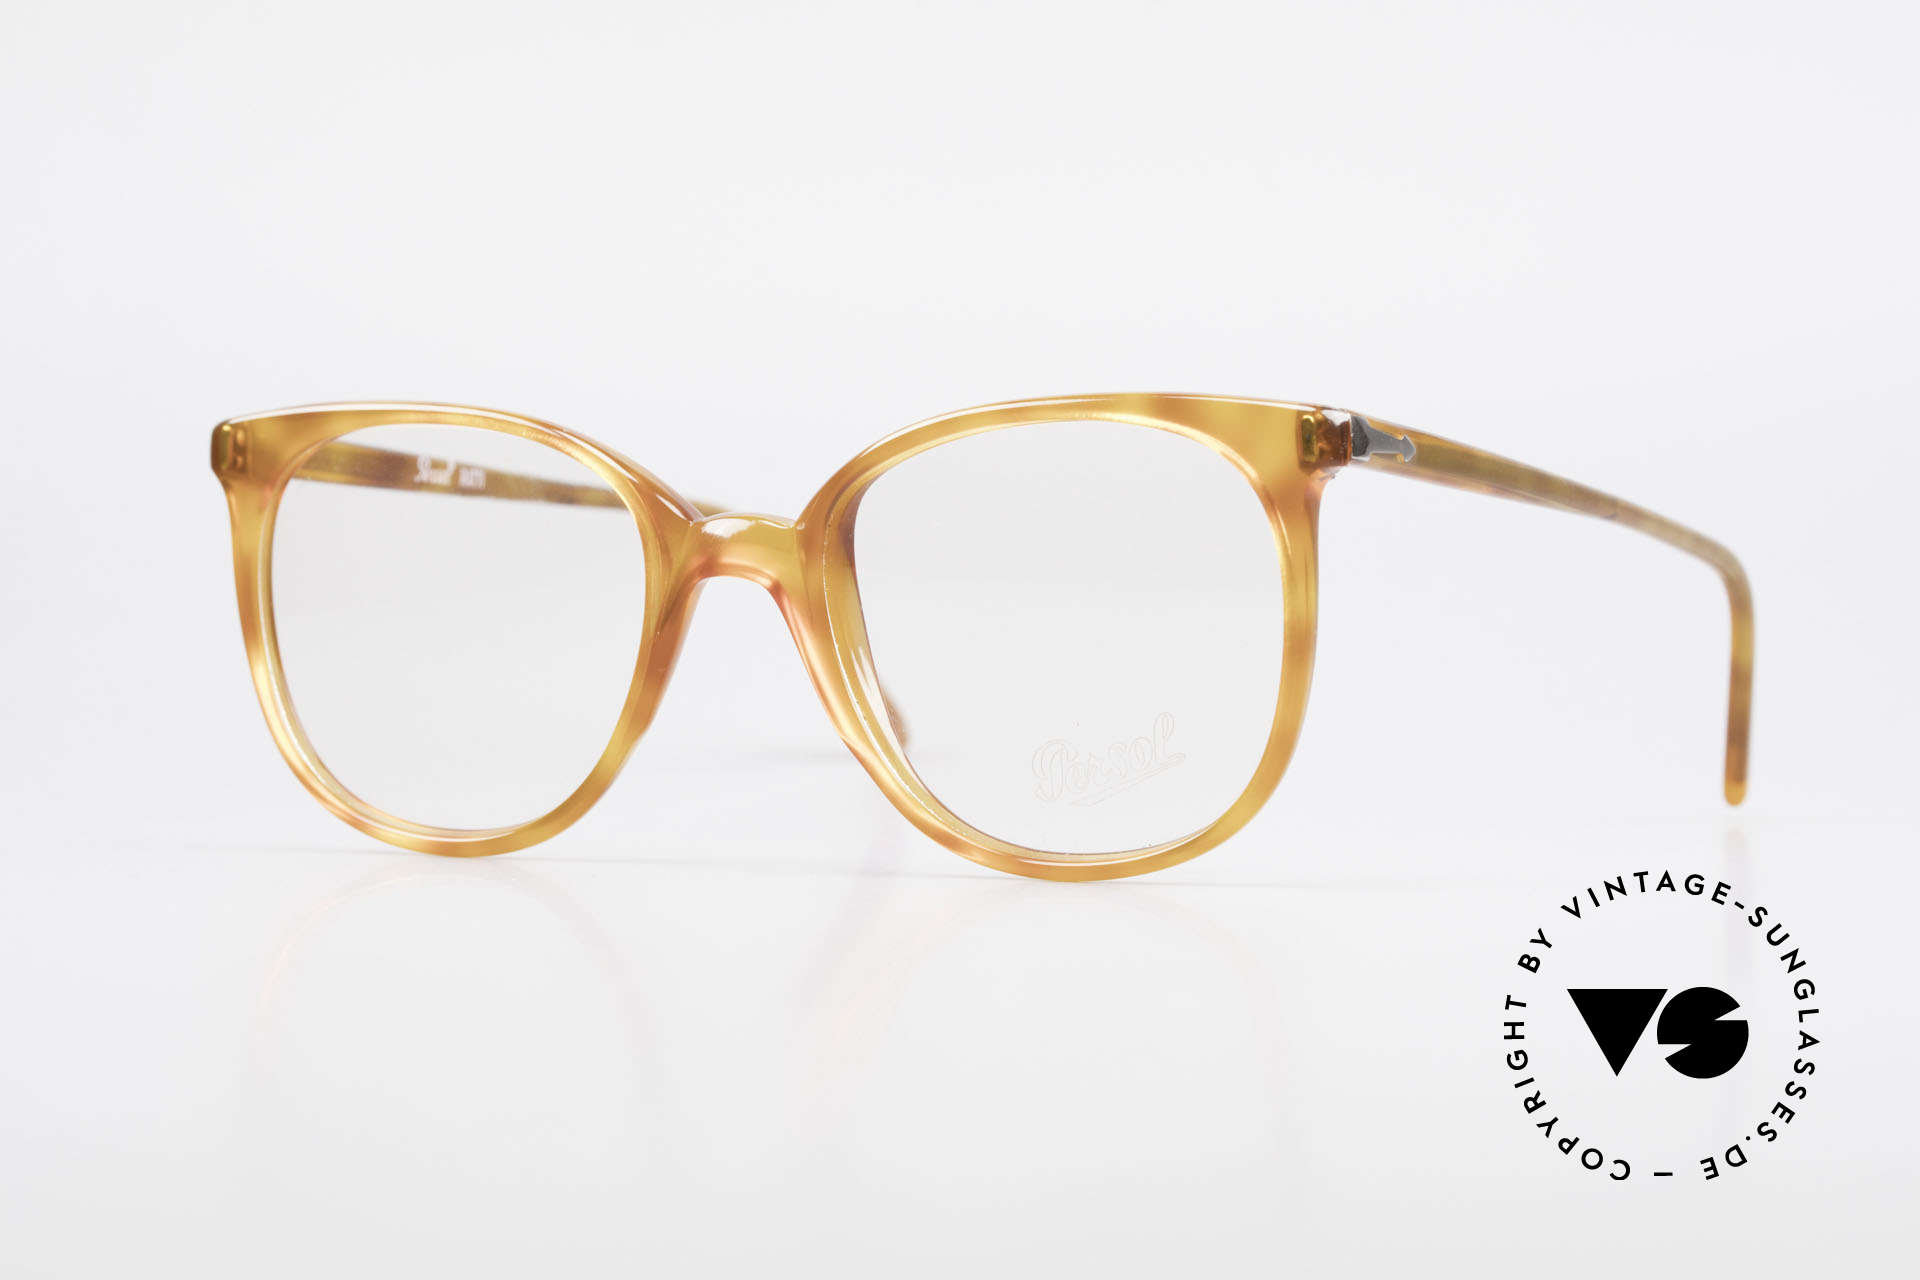 Persol 09181 Ratti Old Vintage Eyeglasses 80's, classic eyeglass-frame by Persol Ratti of the 80's, Made for Men and Women